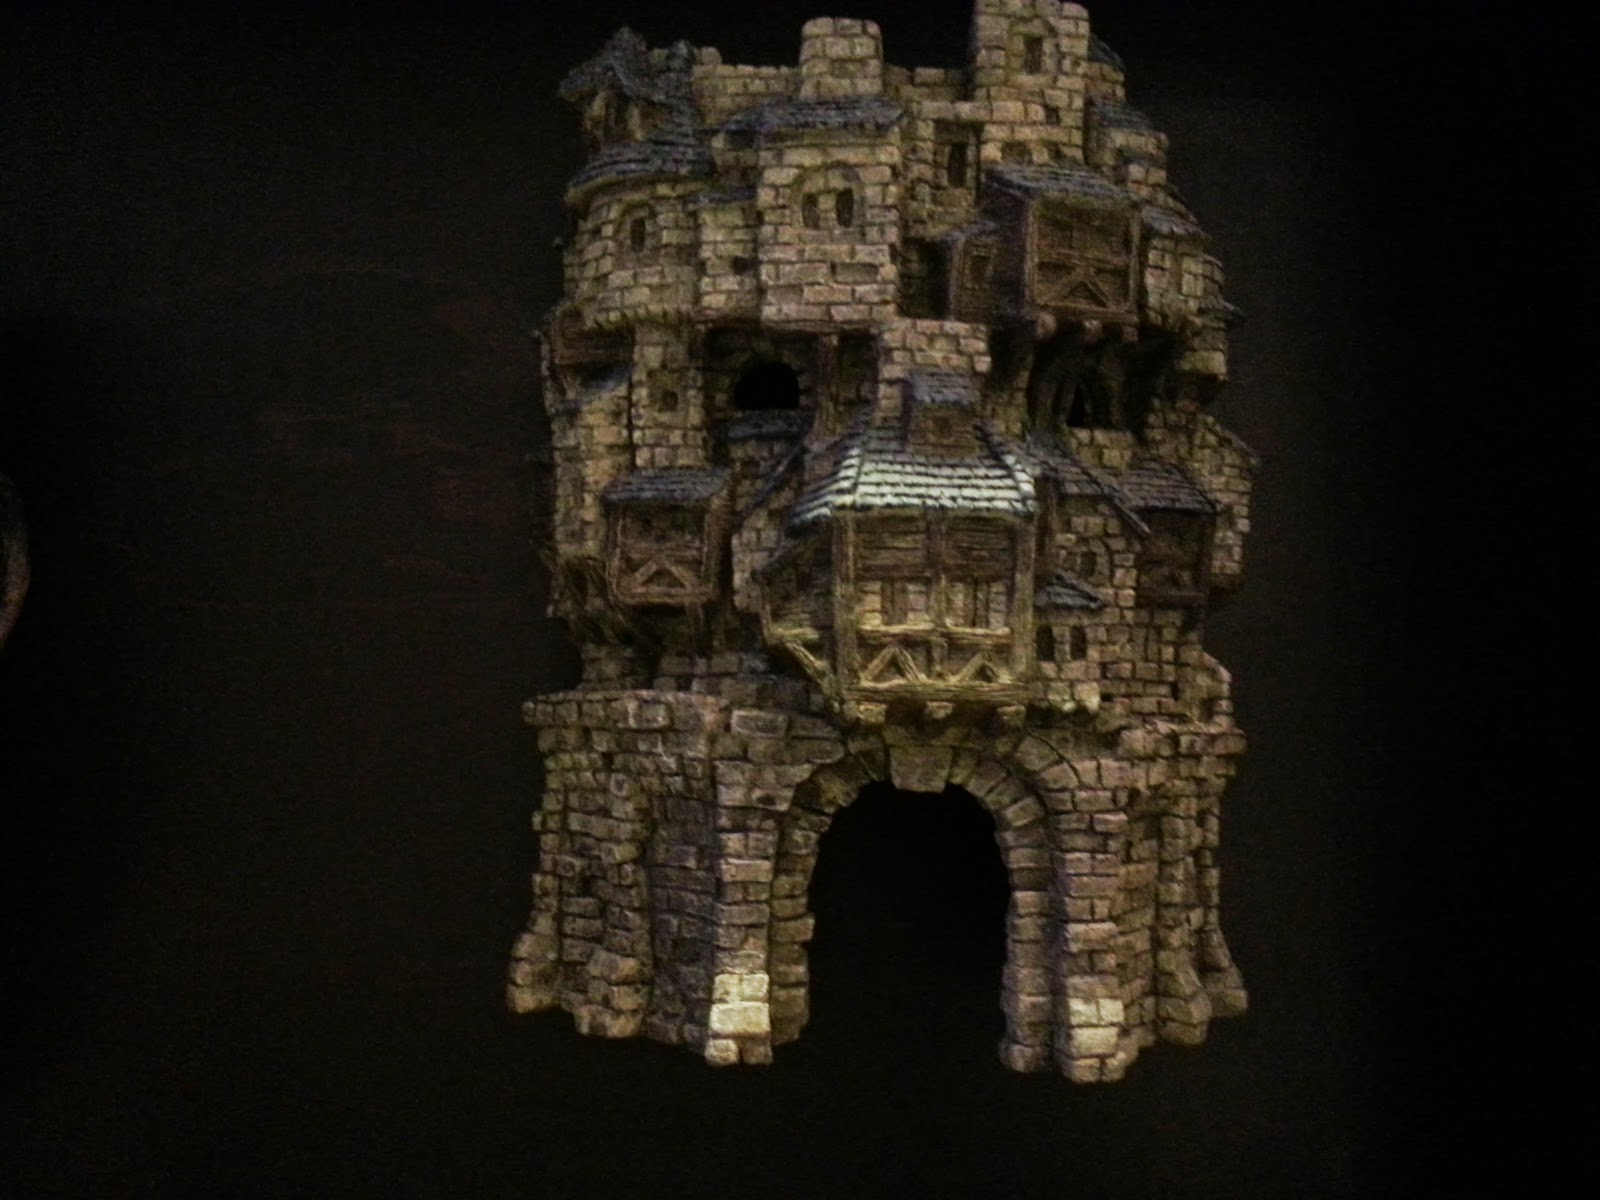 Brick wall? brick mask? at the Fantasy exhibition